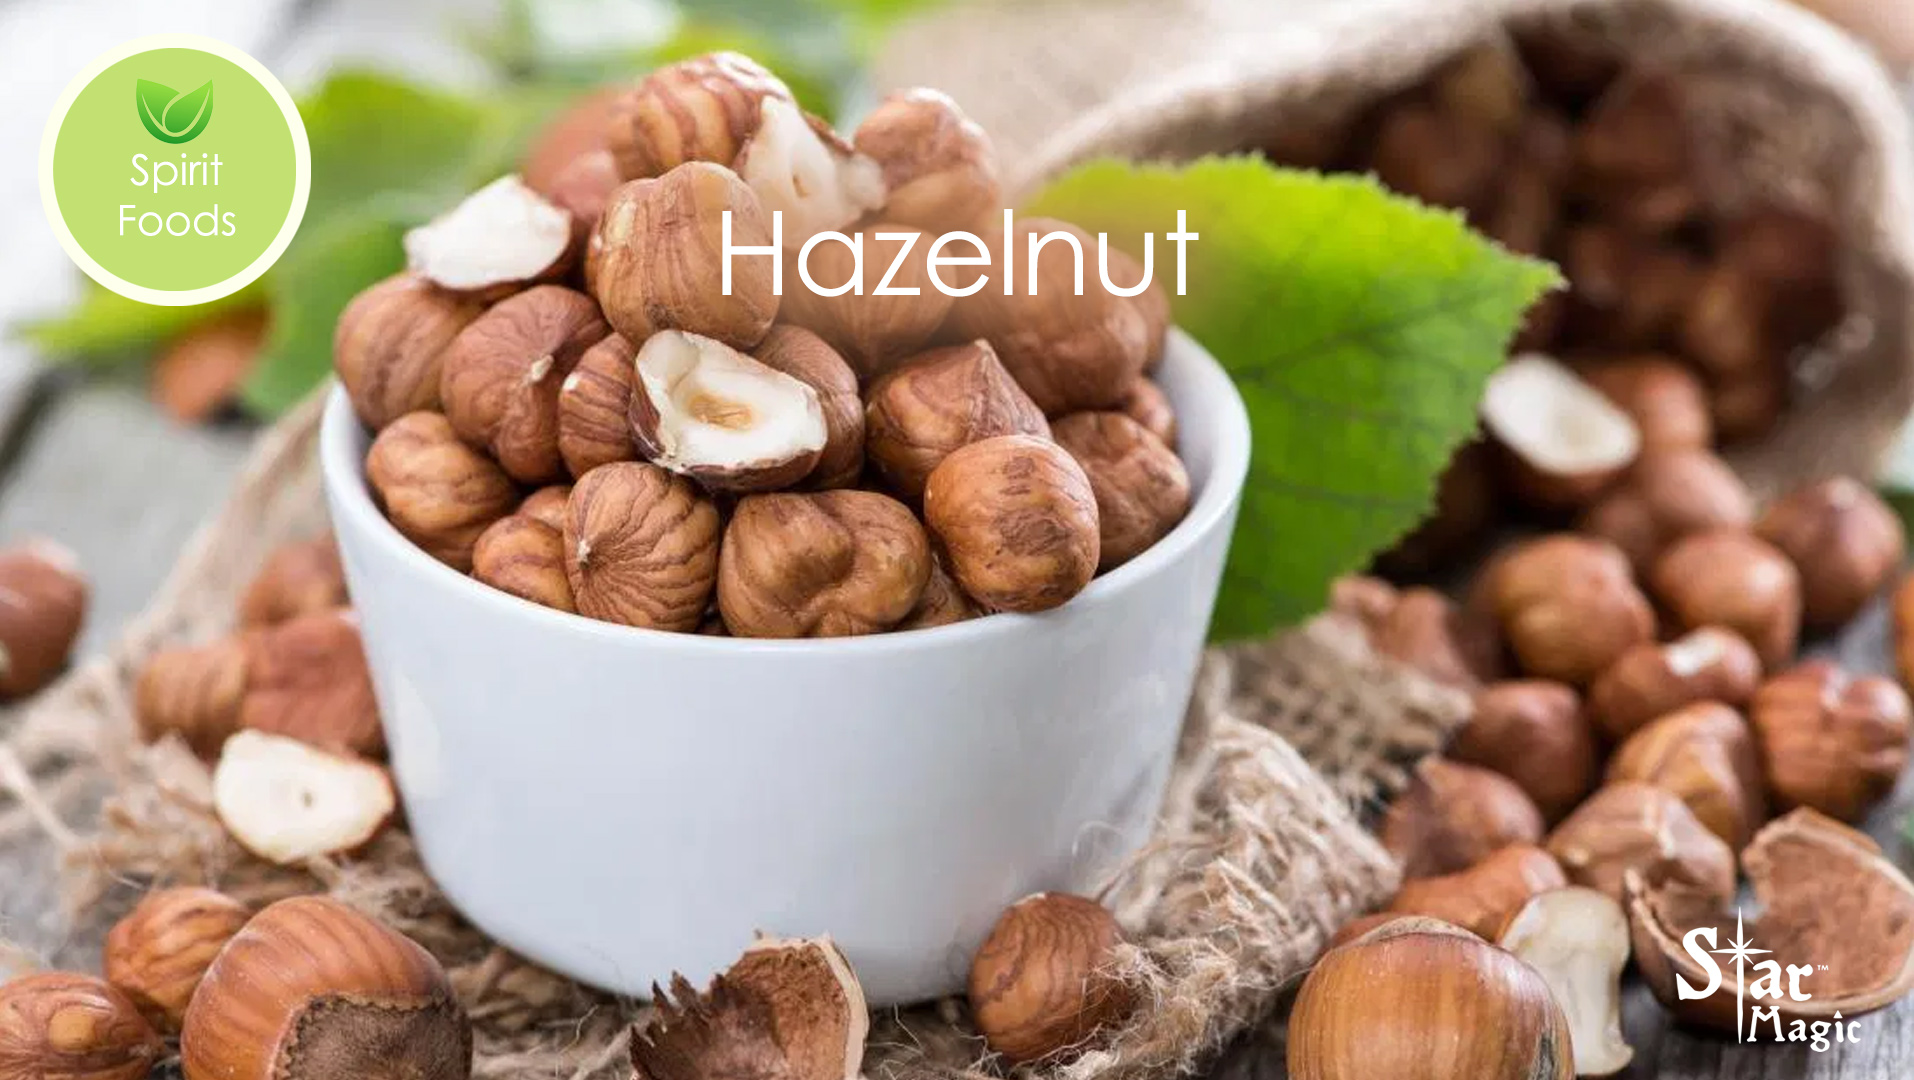 Spirit Food – Hazelnut